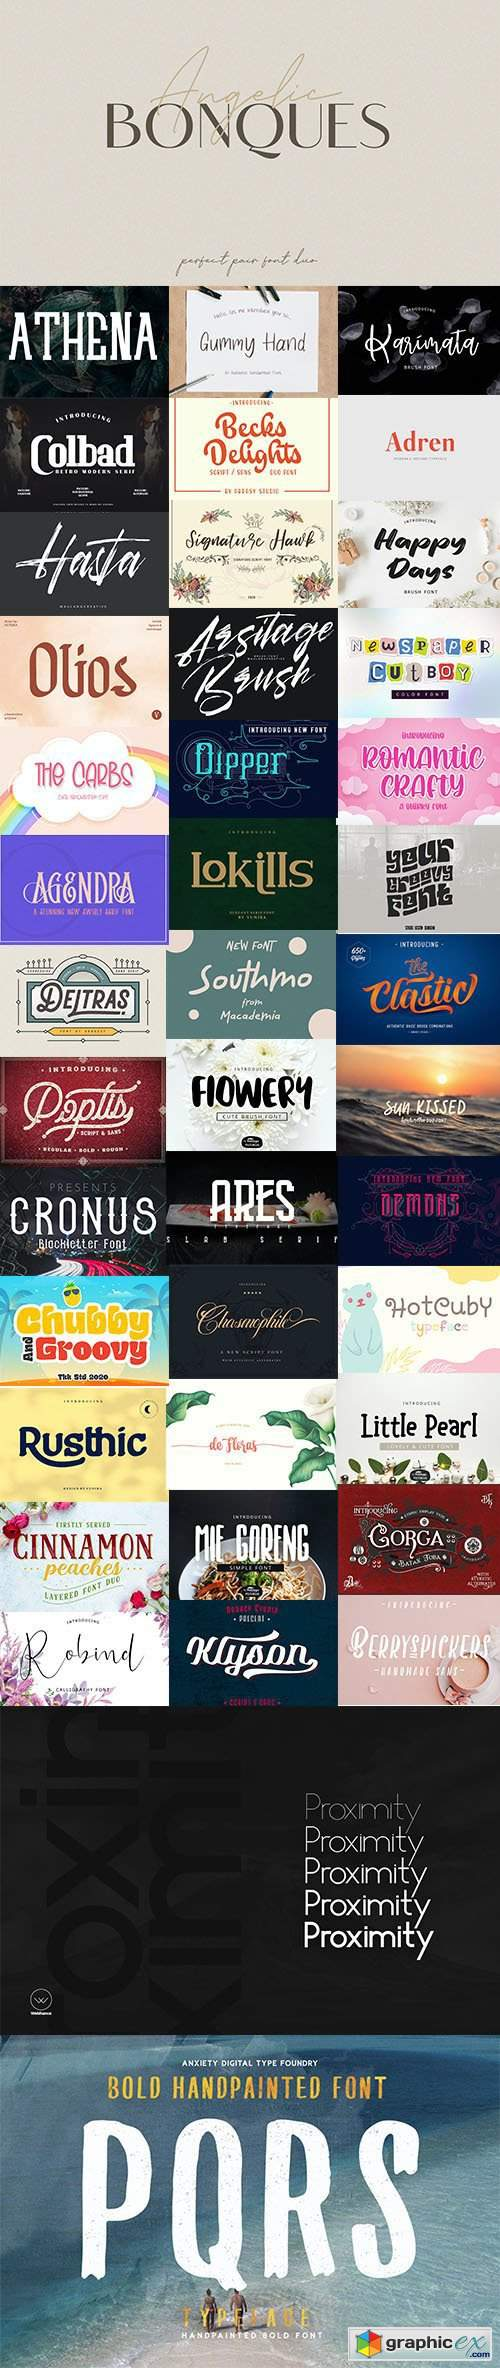 Super Fonts Pack Vol.2 [Aug/2020] - 42 Fonts